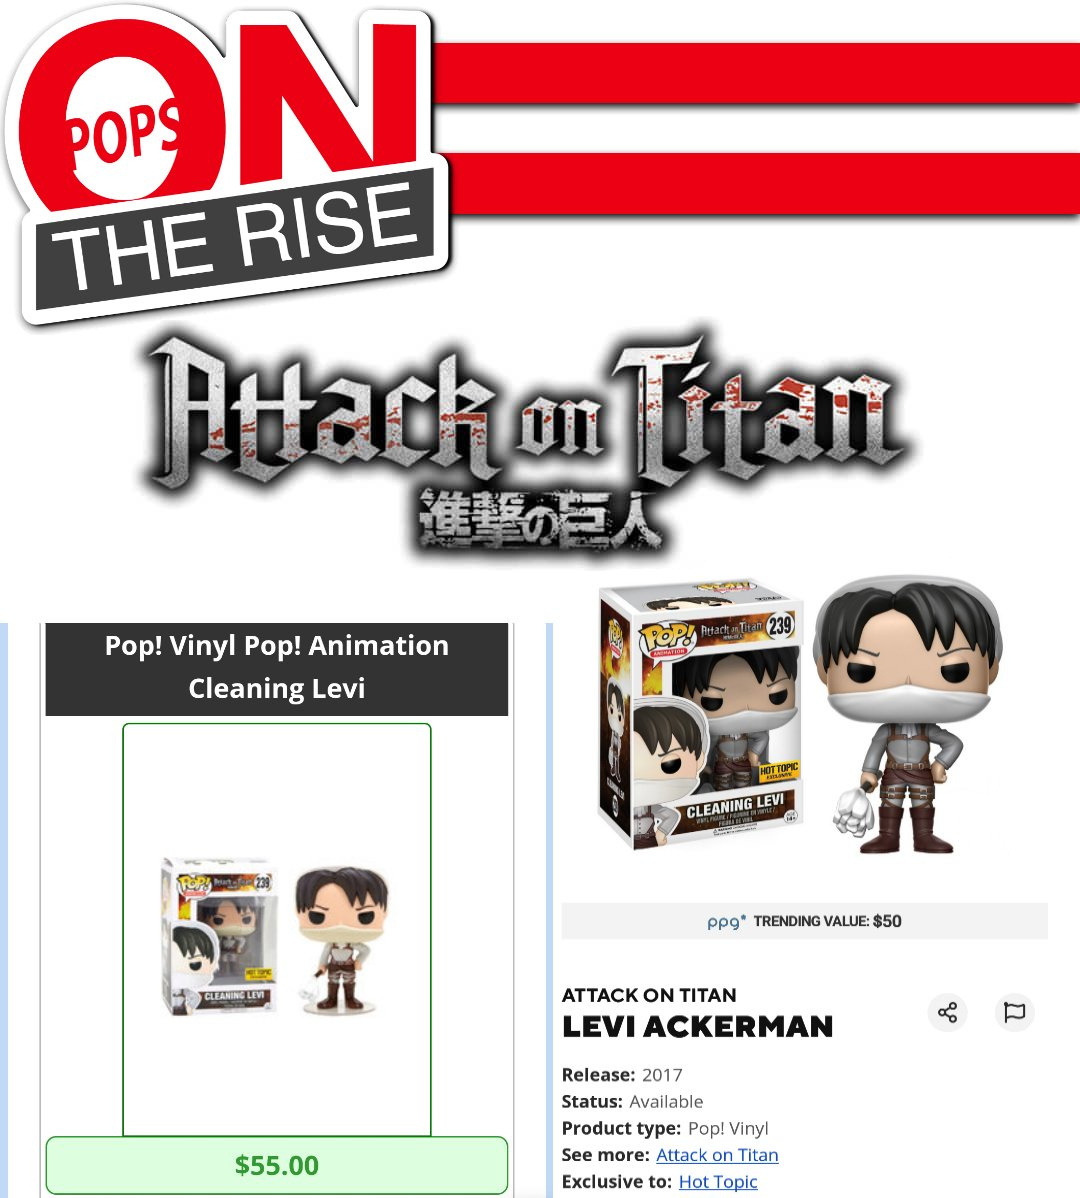 "Popsontherise  Attack on Titans: Cleaning Levi (Hot Topic) Current Value: $50-$55 Release year: 2017 . ""Best grab a broom & get to work"" Captain Levi and his Super Cleaning Squad lol AoT pops for the most part have risen somewhat, thanks to another great anime season!pic.twitter.com/0RGuhEfo4C"